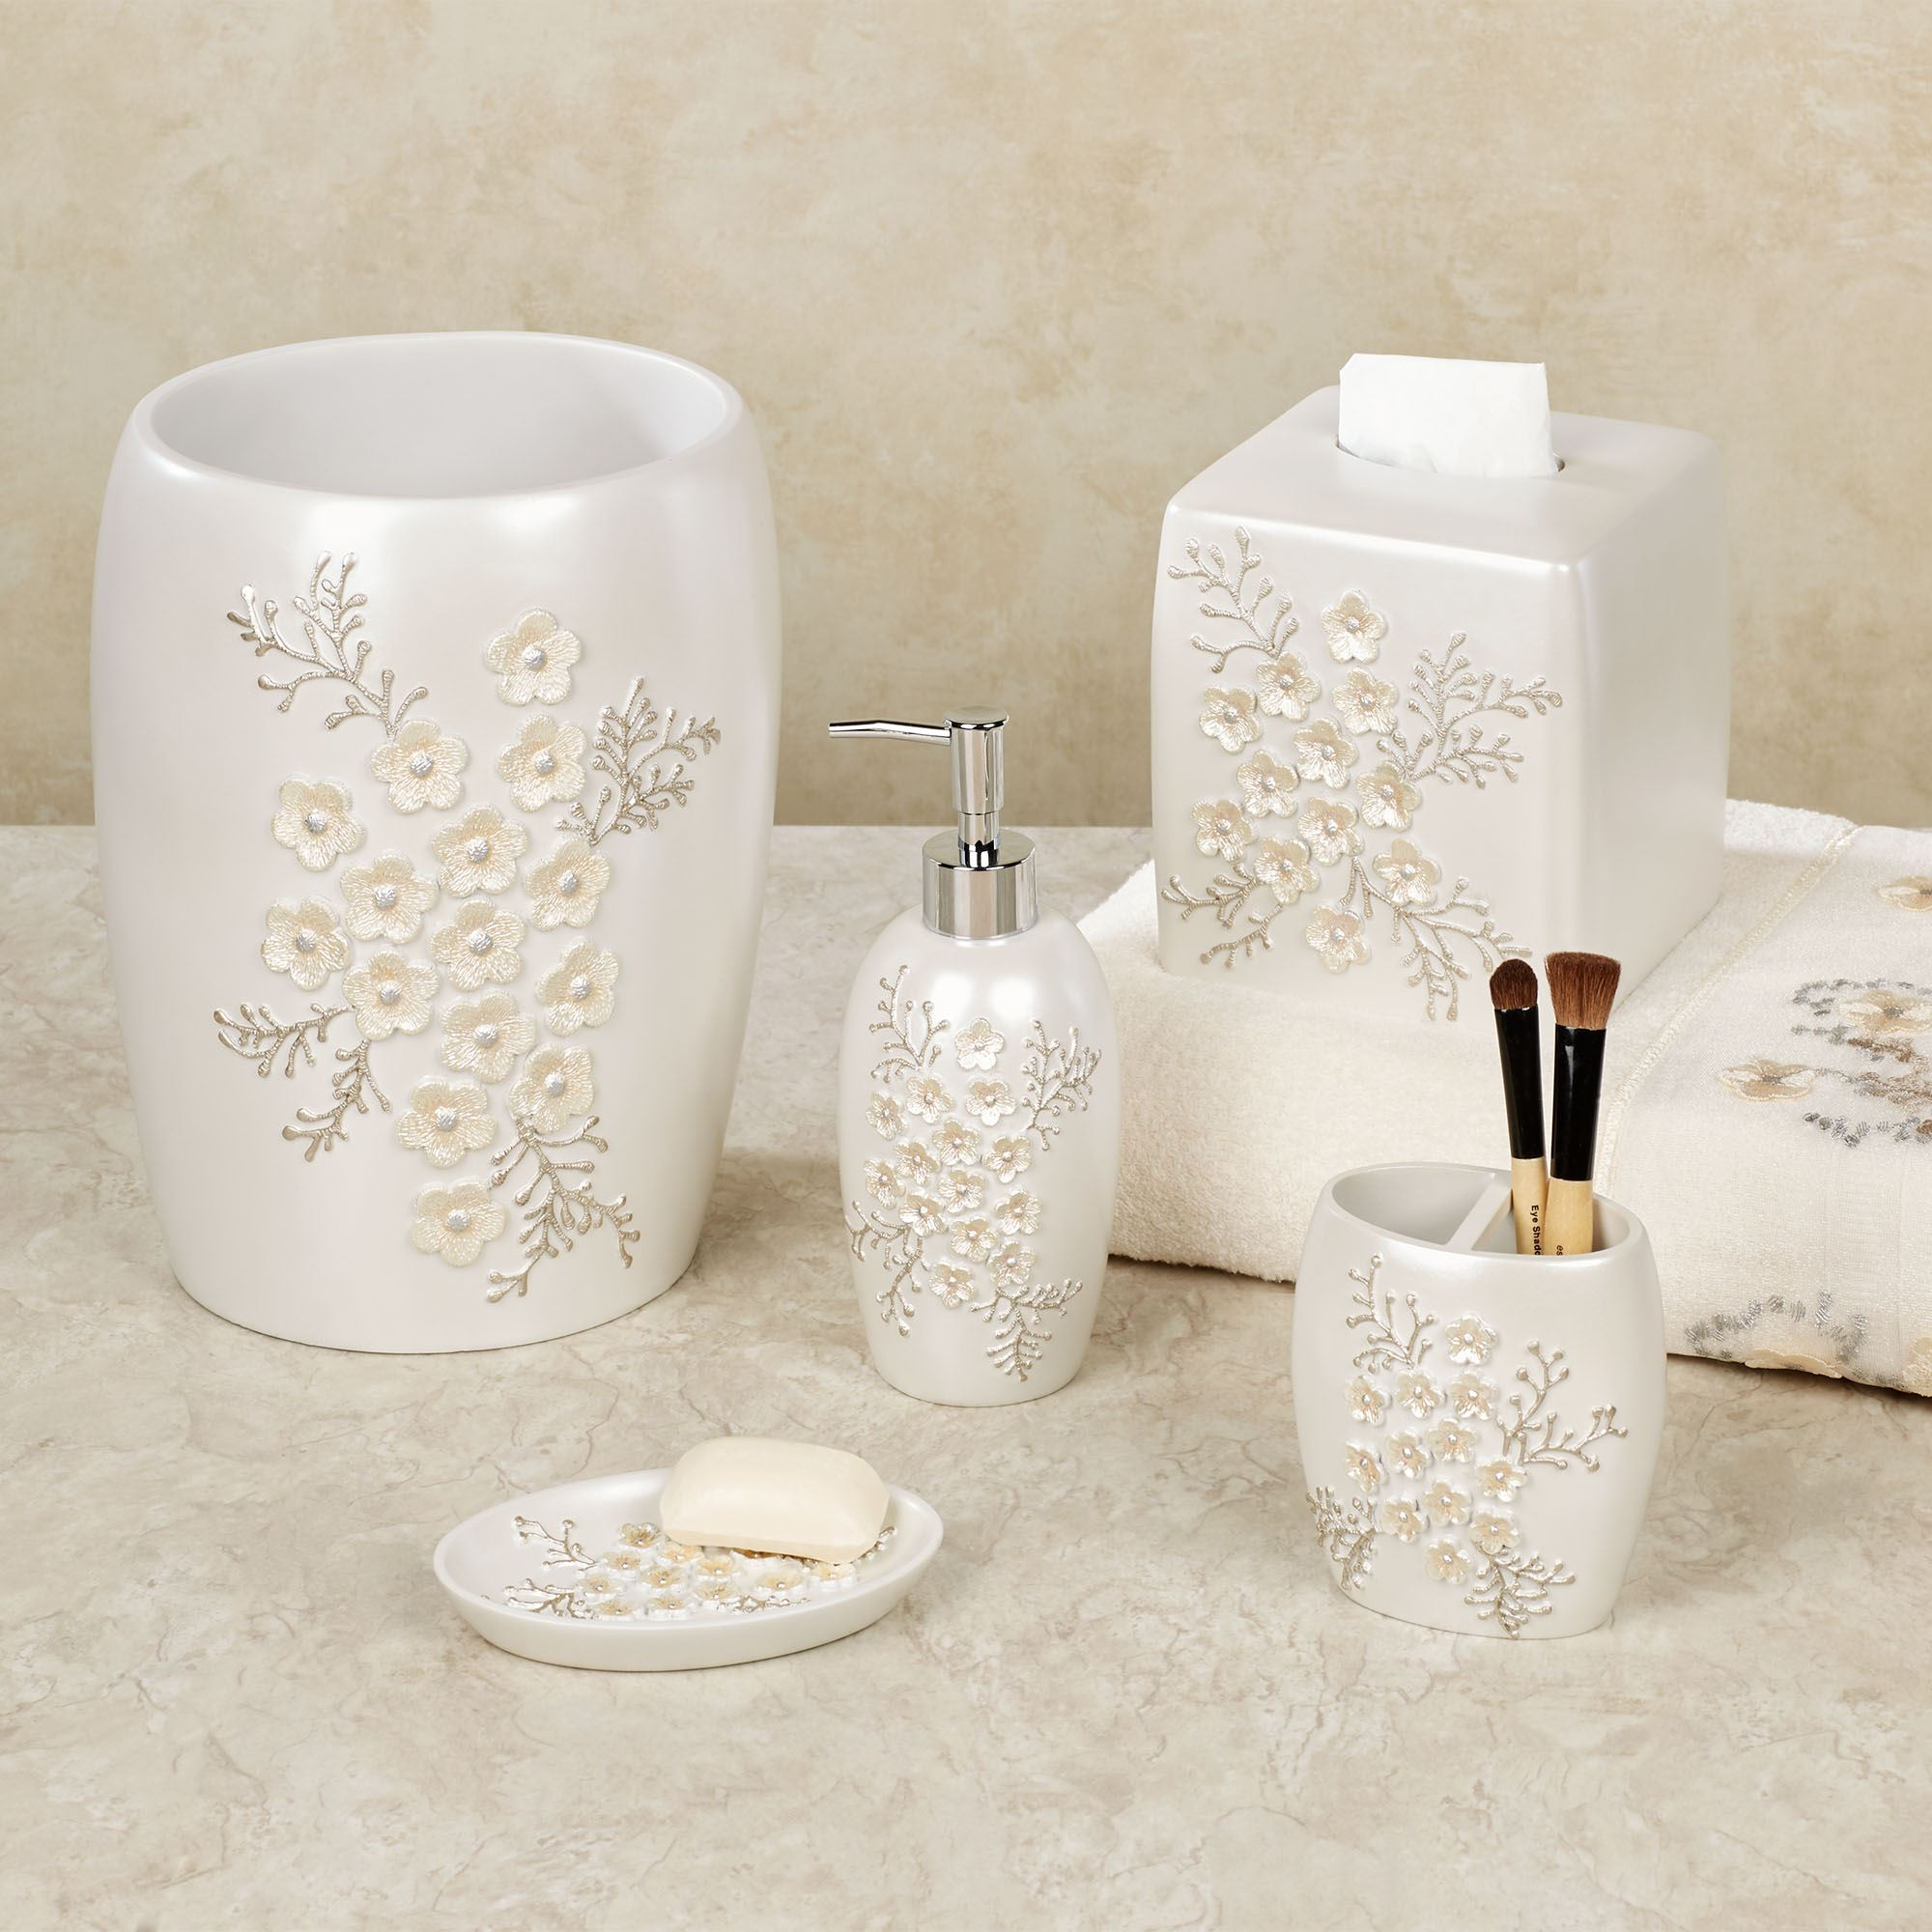 Bloomfield Floral Bath Accessories